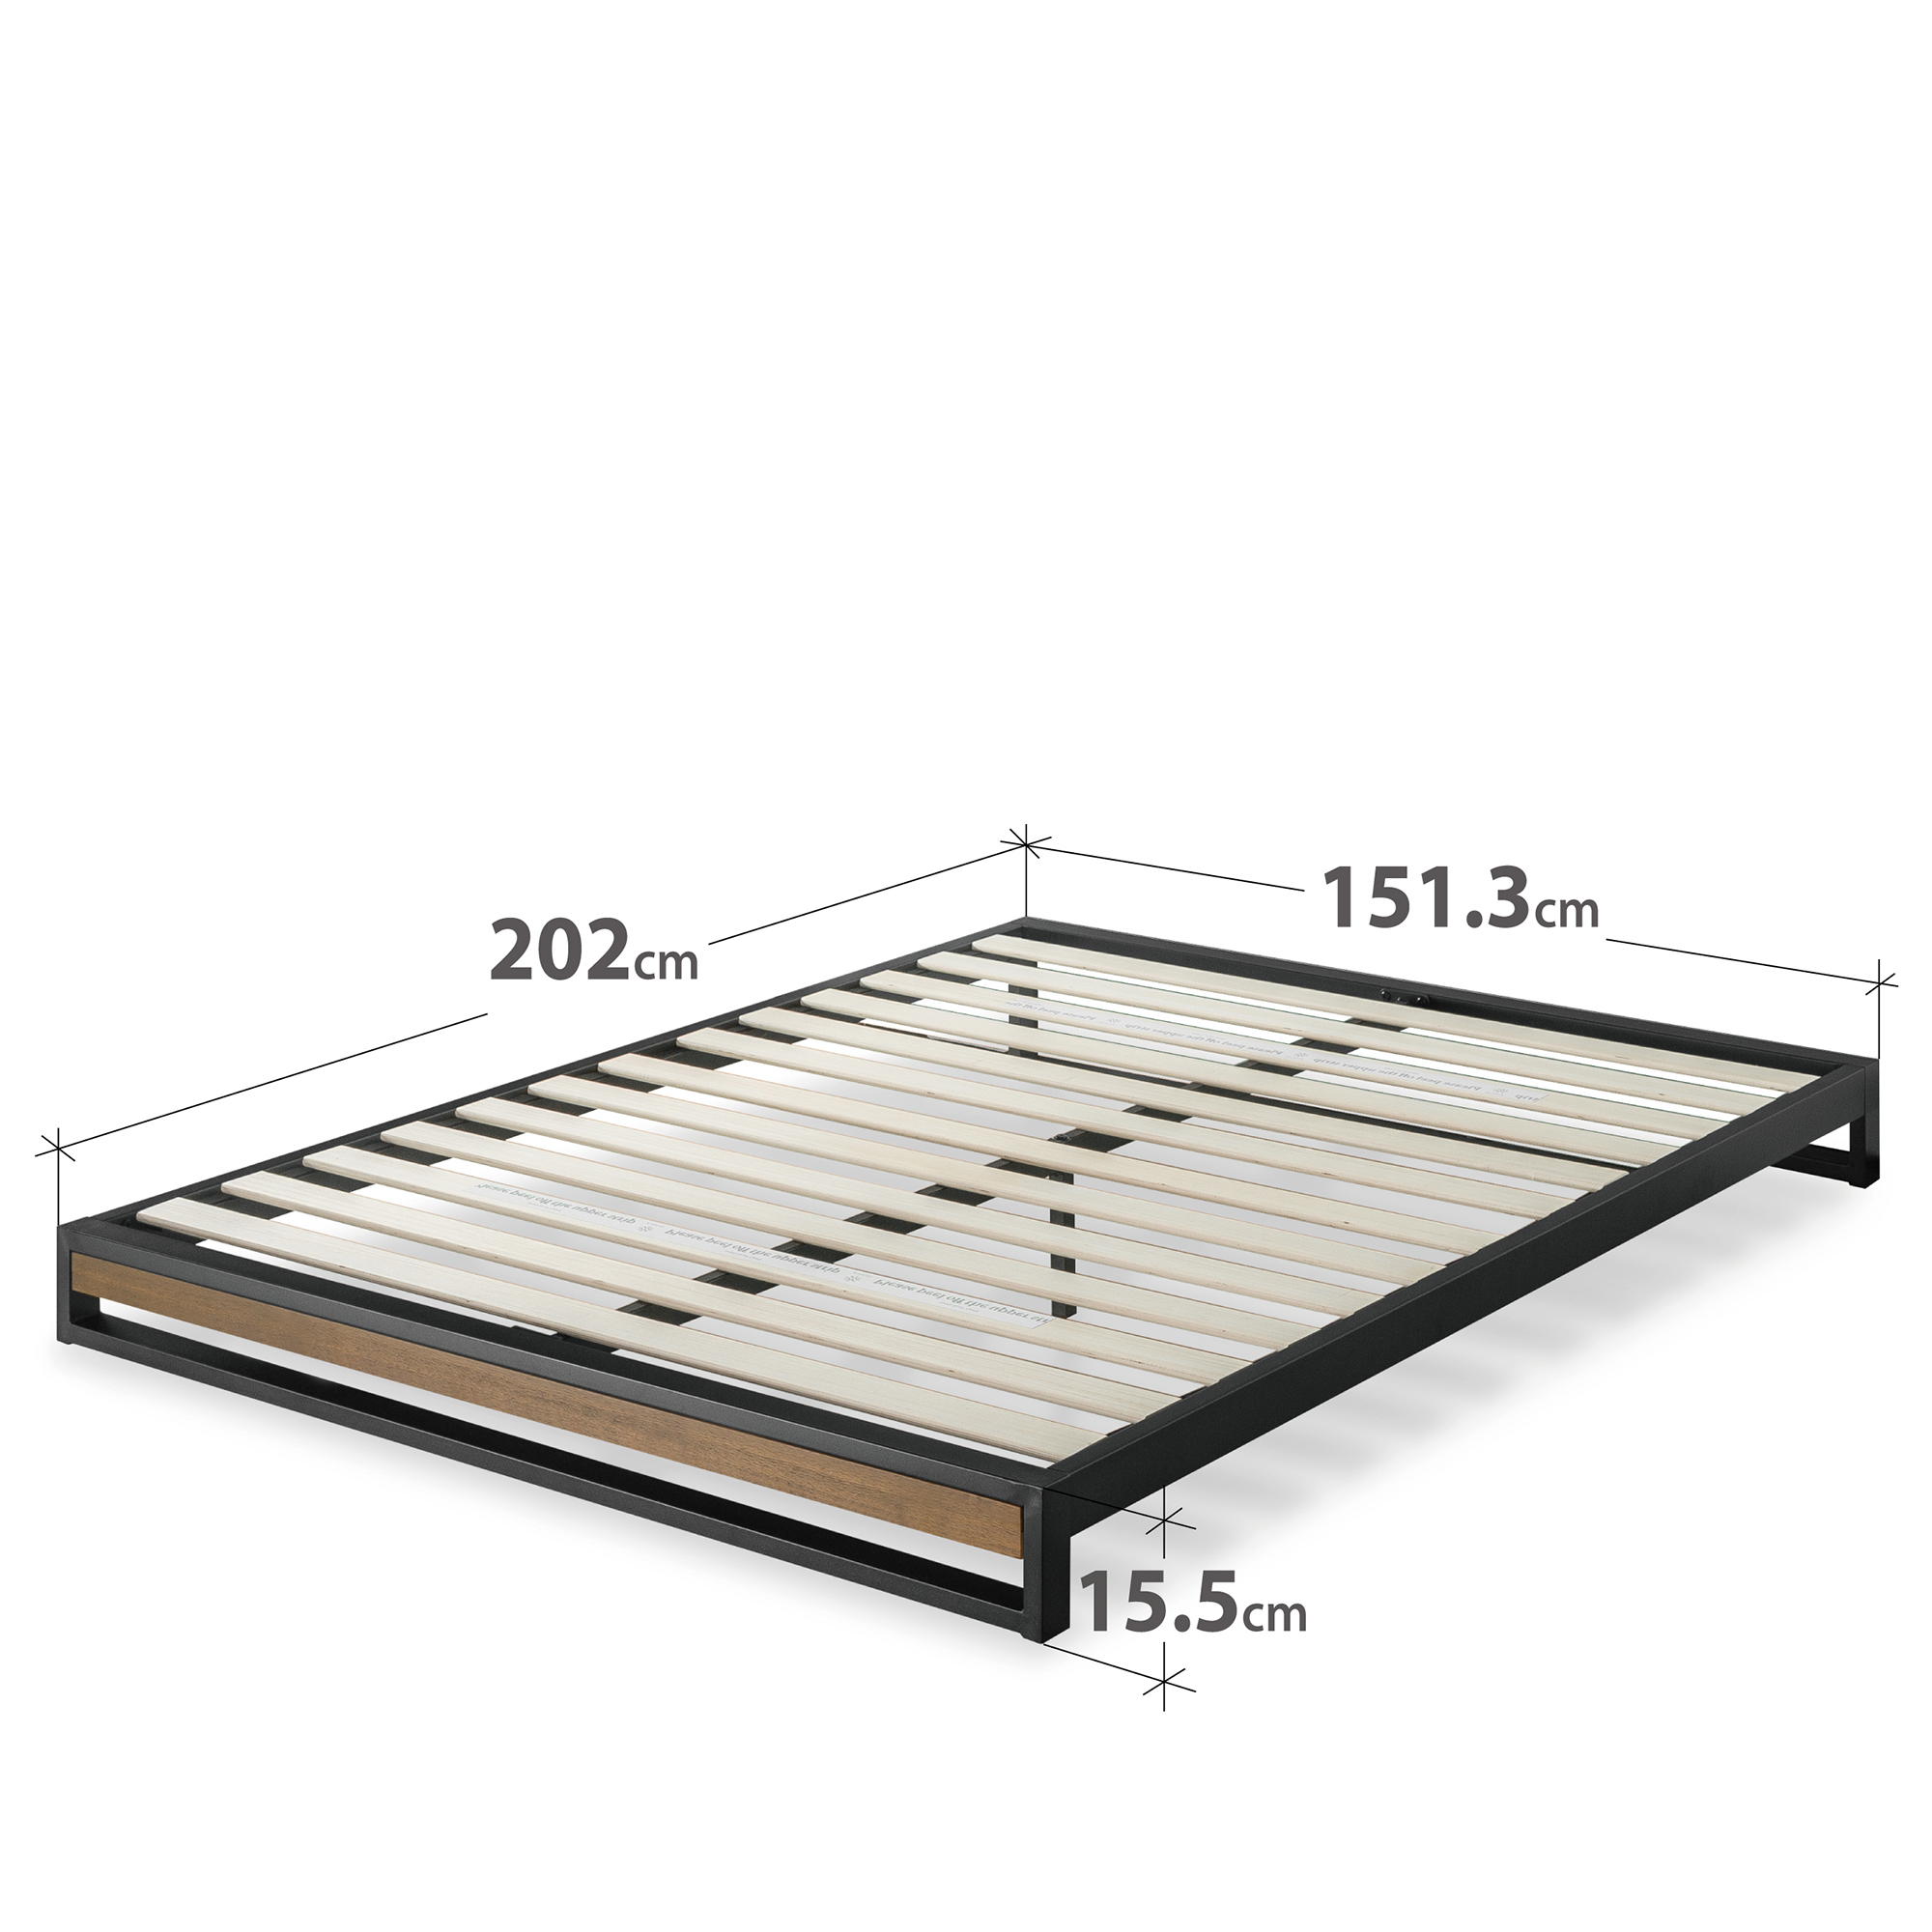 Zinus-Industrial-Metal-Wood-Bed-Frame-Single-Double-Queen-King-Low-Base-Mattress thumbnail 26